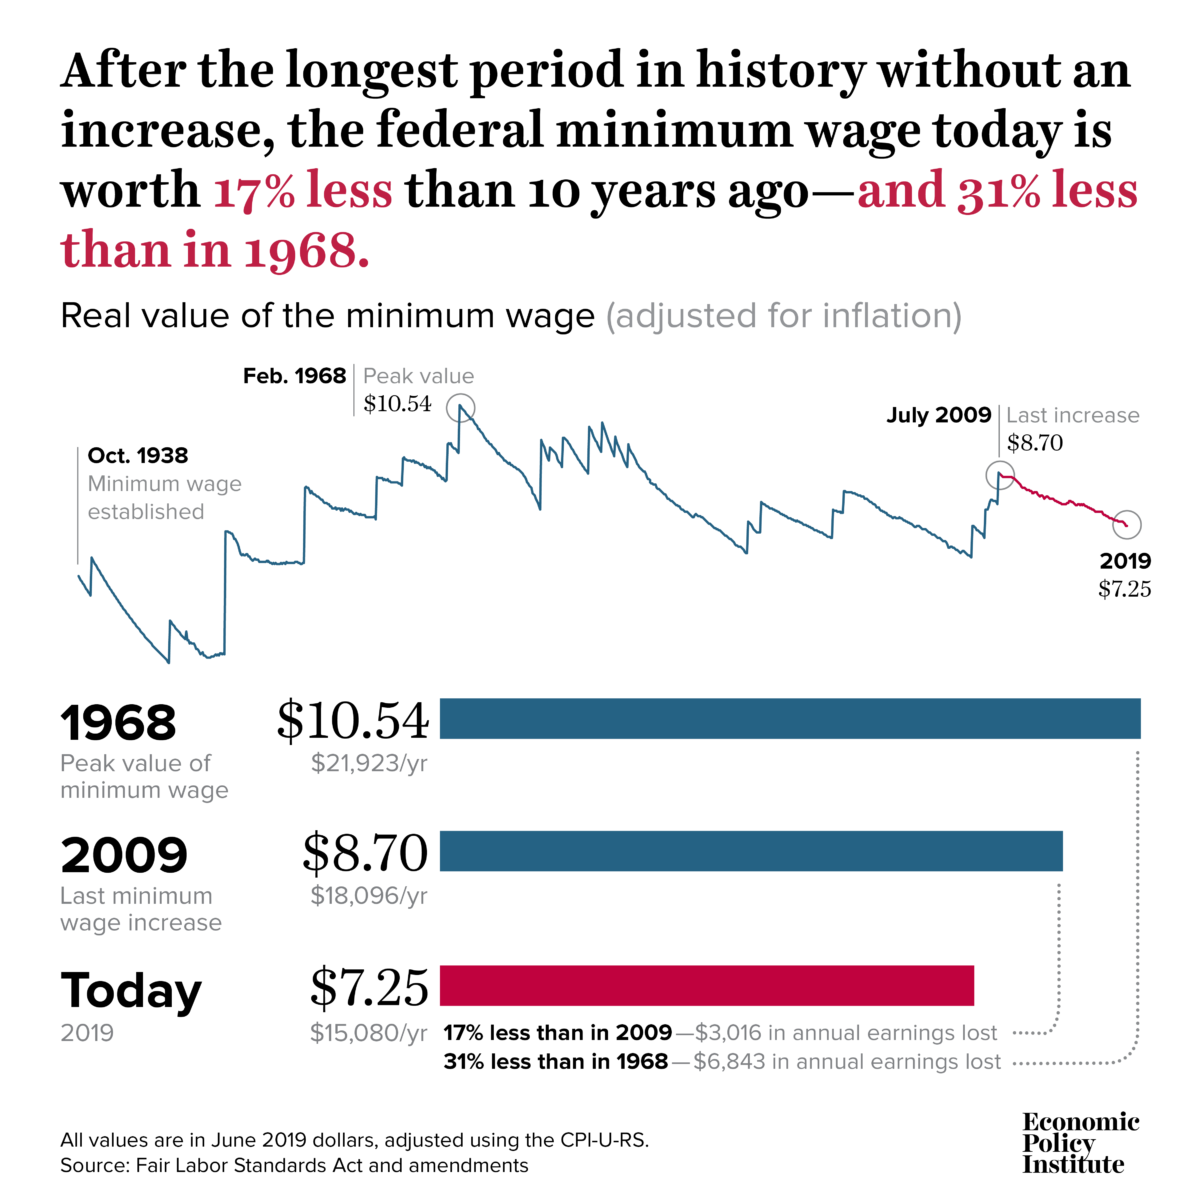 Longest Period in History Without an Increase in Minimum Wage